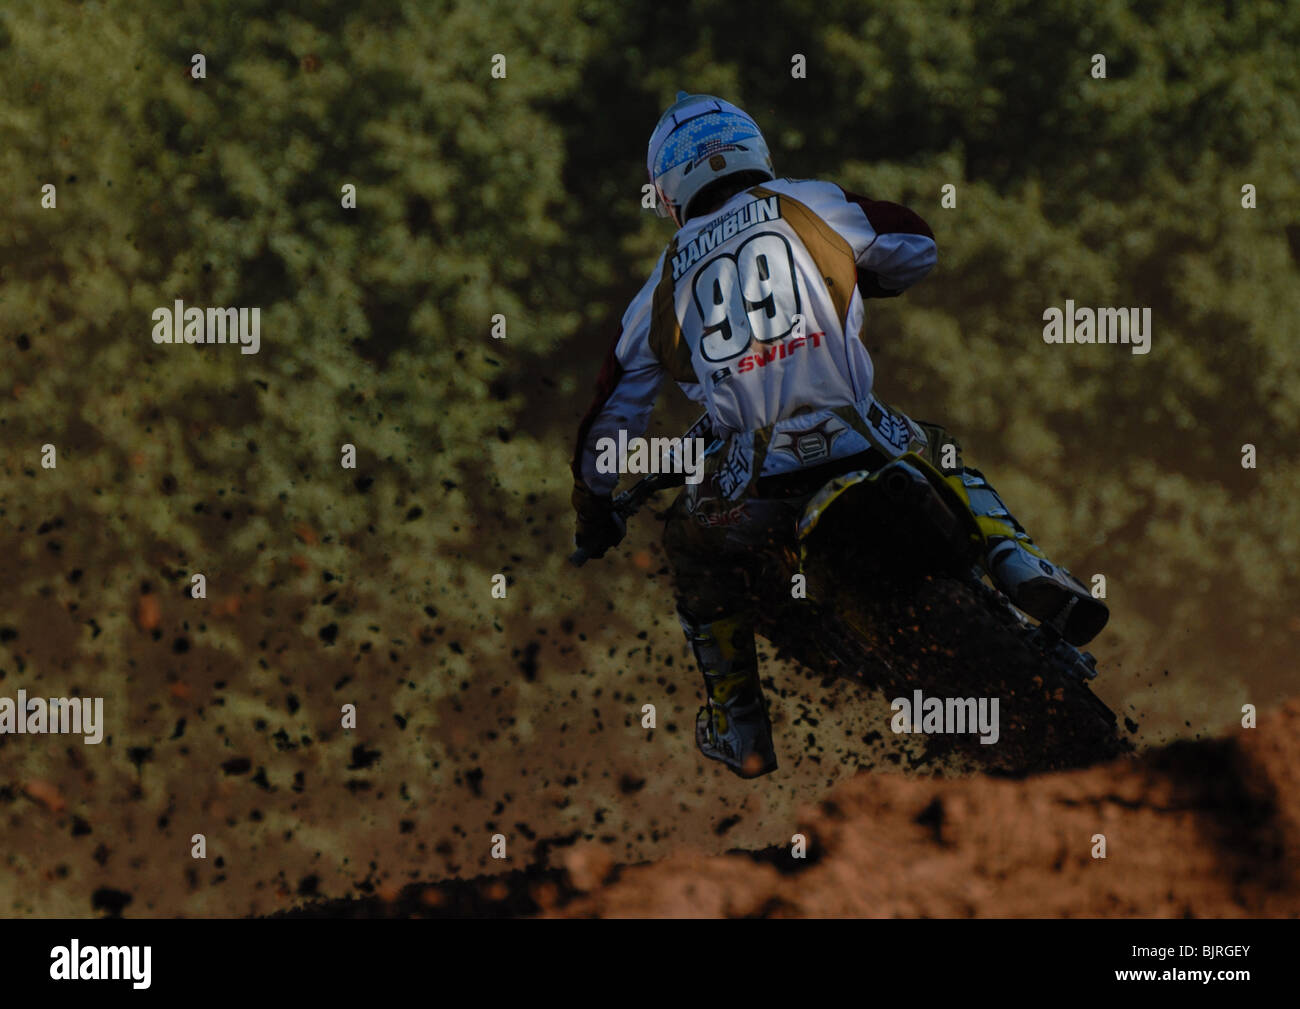 Sean Hamblin in action at the Maxxis British Motocross round at Howton Court, Pontrilas, Herefordshire in September - Stock Image